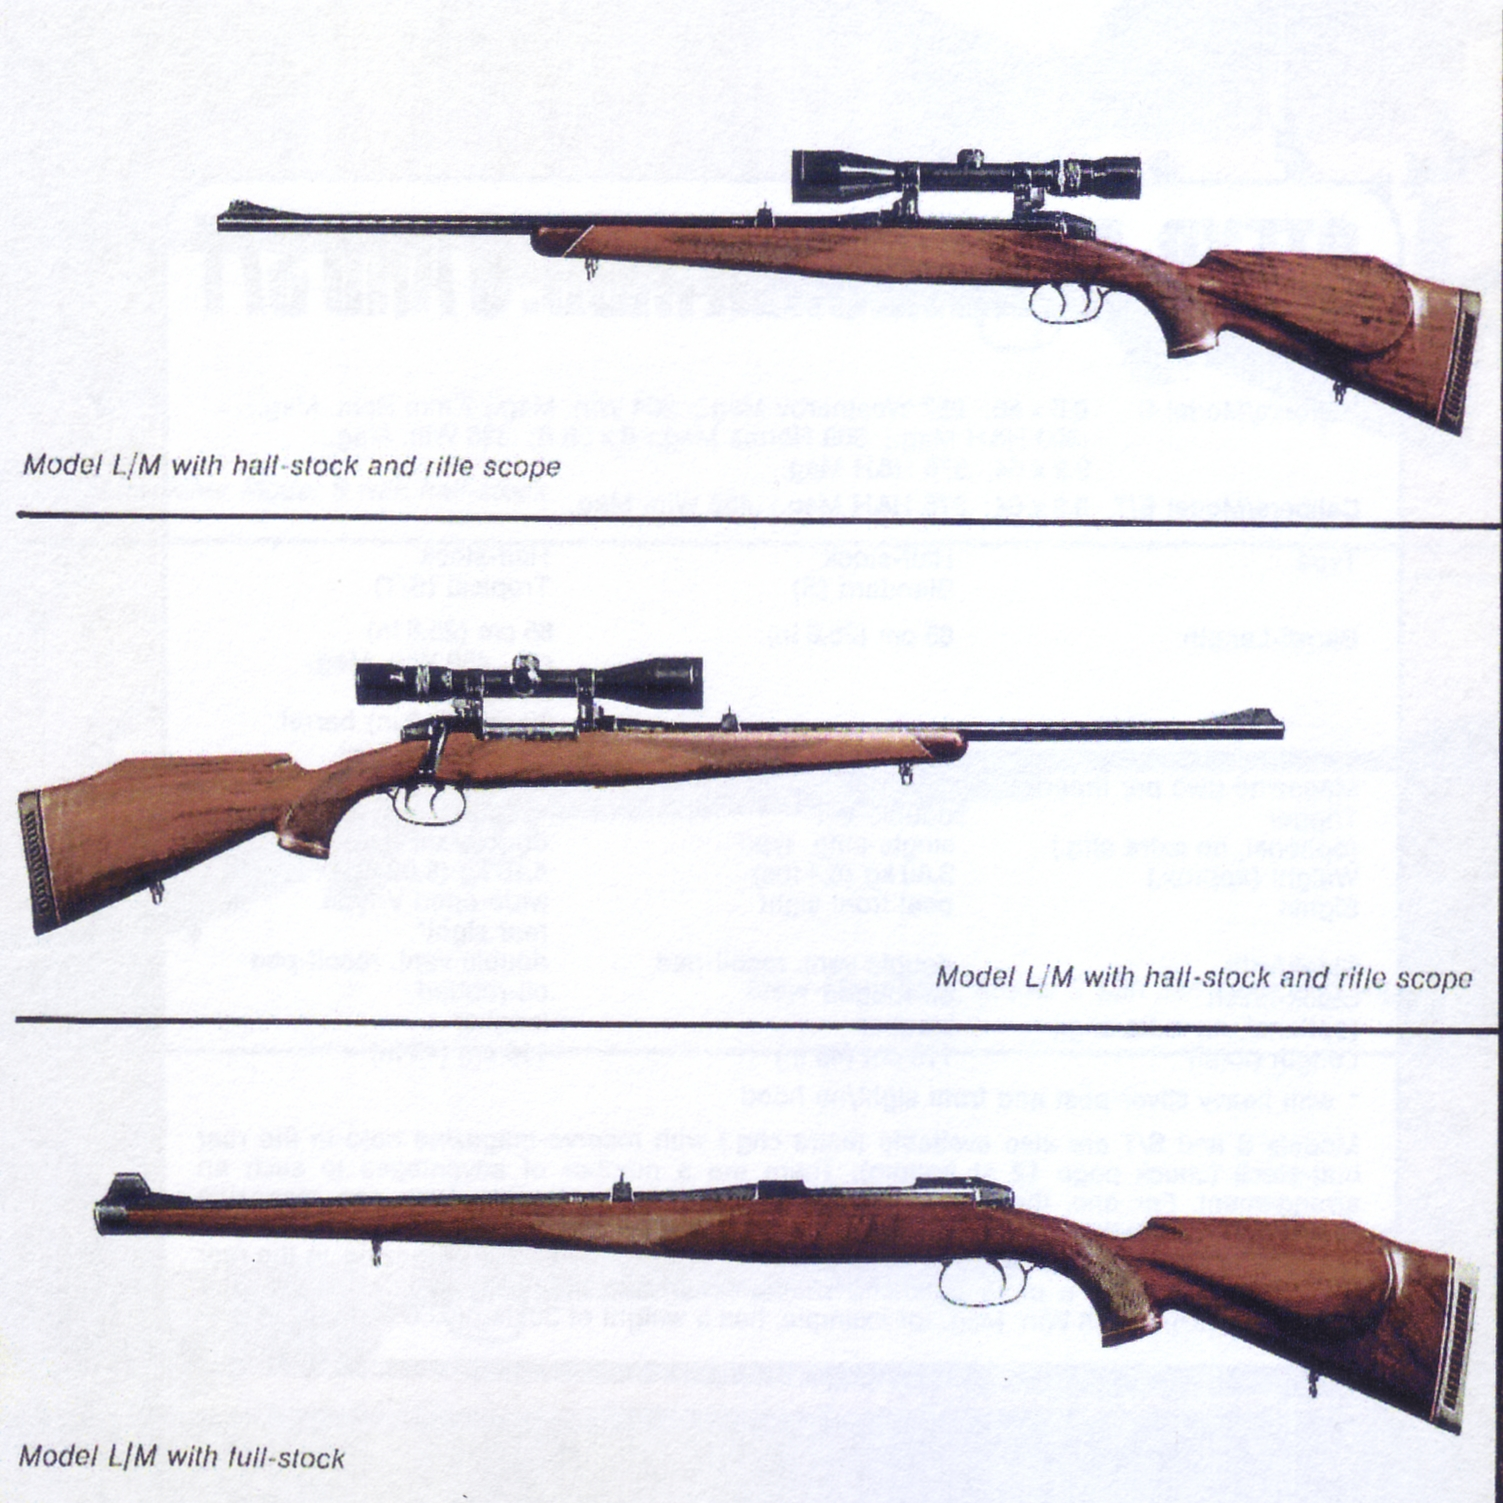 The Mannlicher-Schönauer M72 Model L/M stock style options. (Picture from the original Steyr catalog and courtesy of Steyr.)